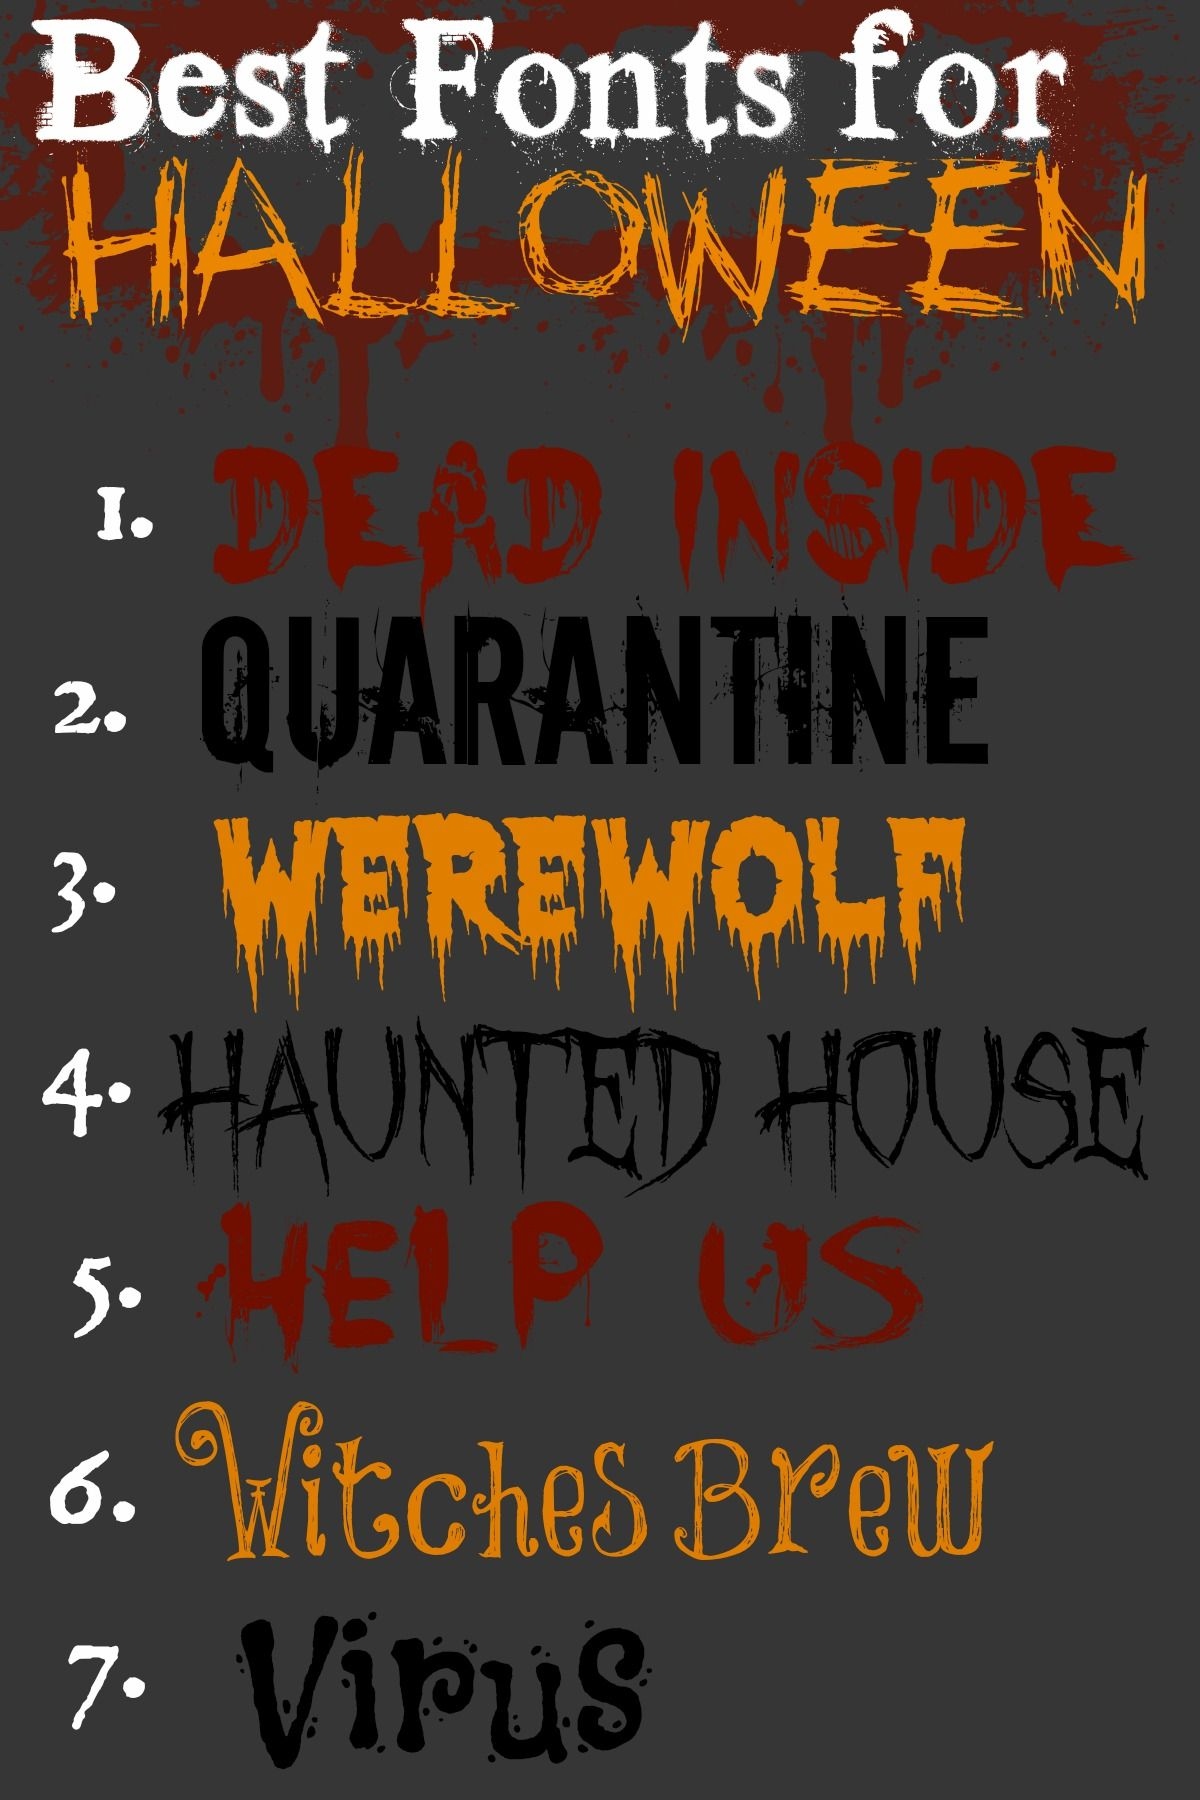 Best Halloween Fonts {free and an easy download link